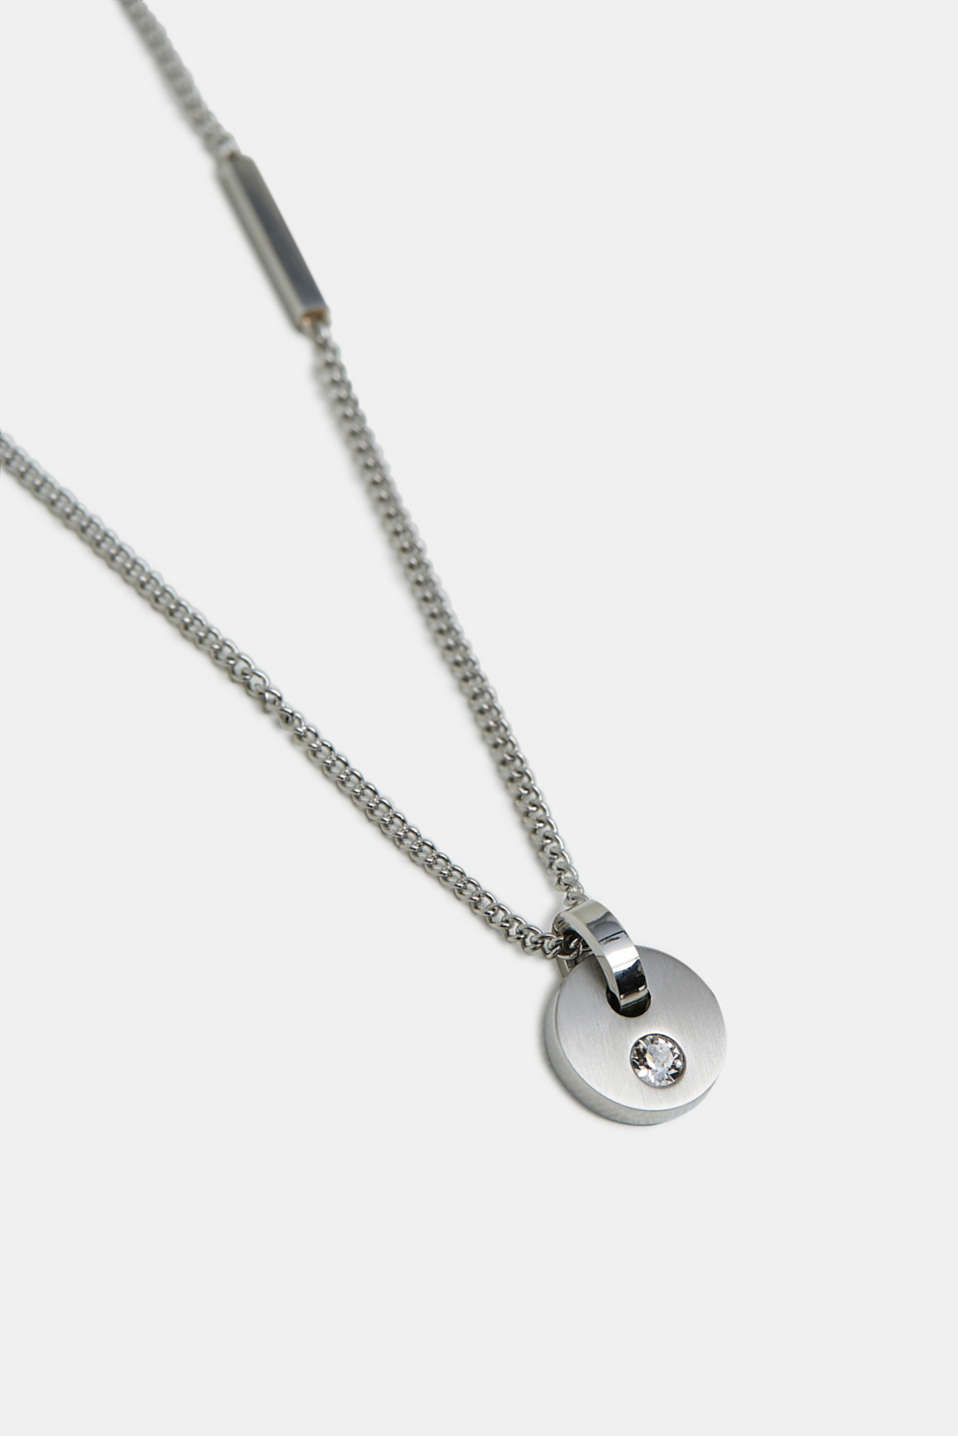 Stainless steel necklace with zirconia pendant, SILVER, detail image number 1